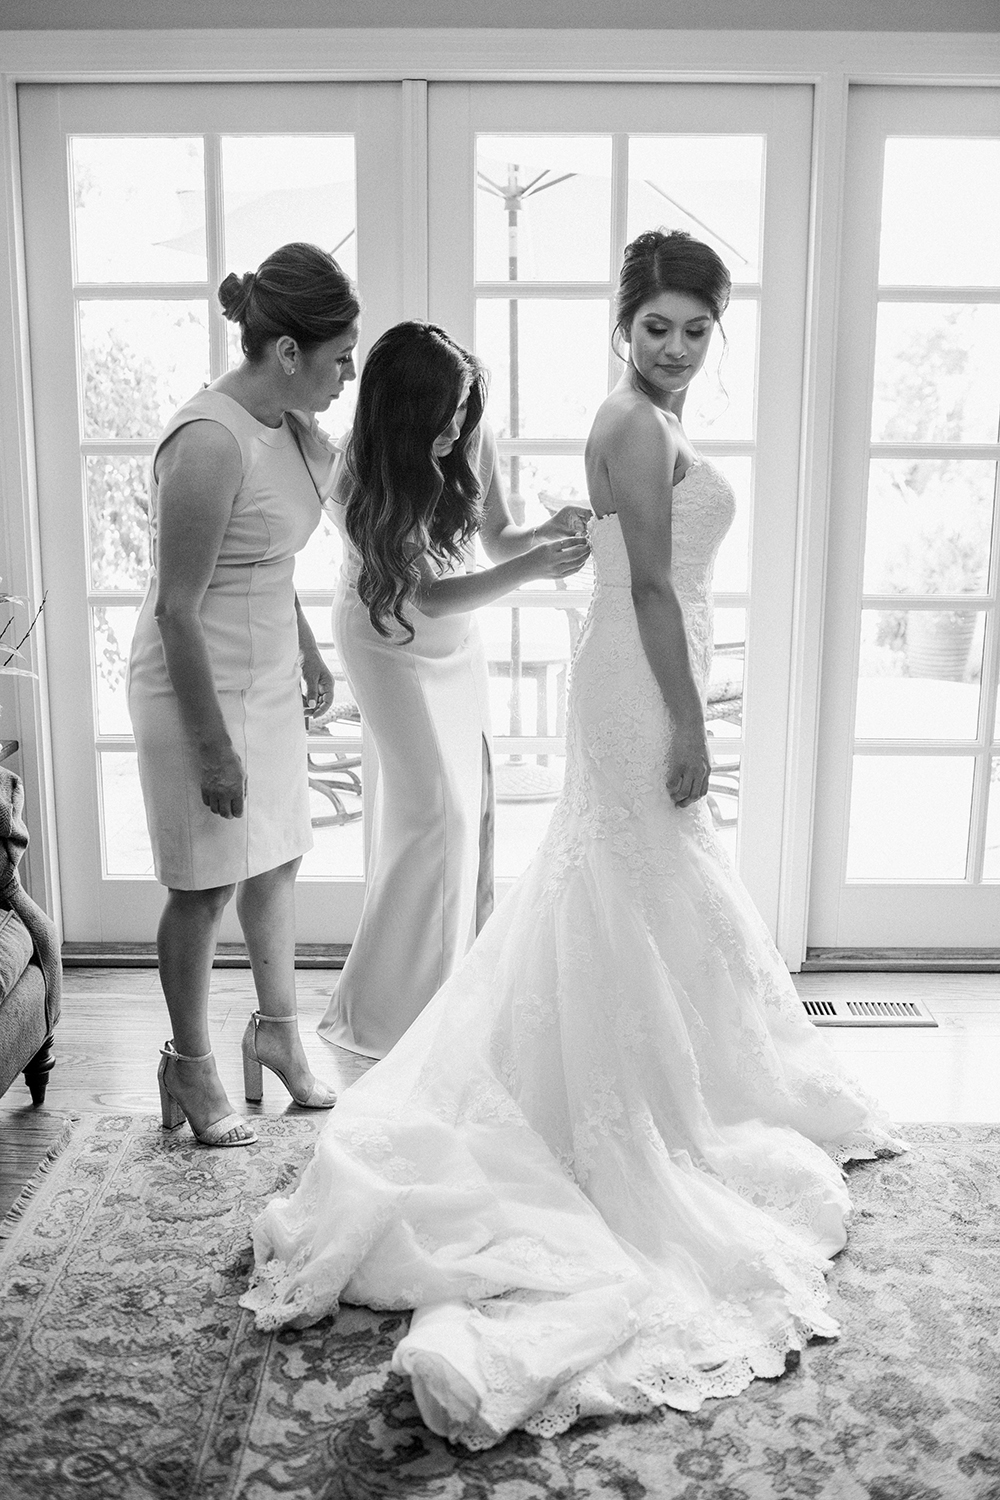 Sister and mother helping the bride with her wedding dress before heading to Mission Santa Clara.